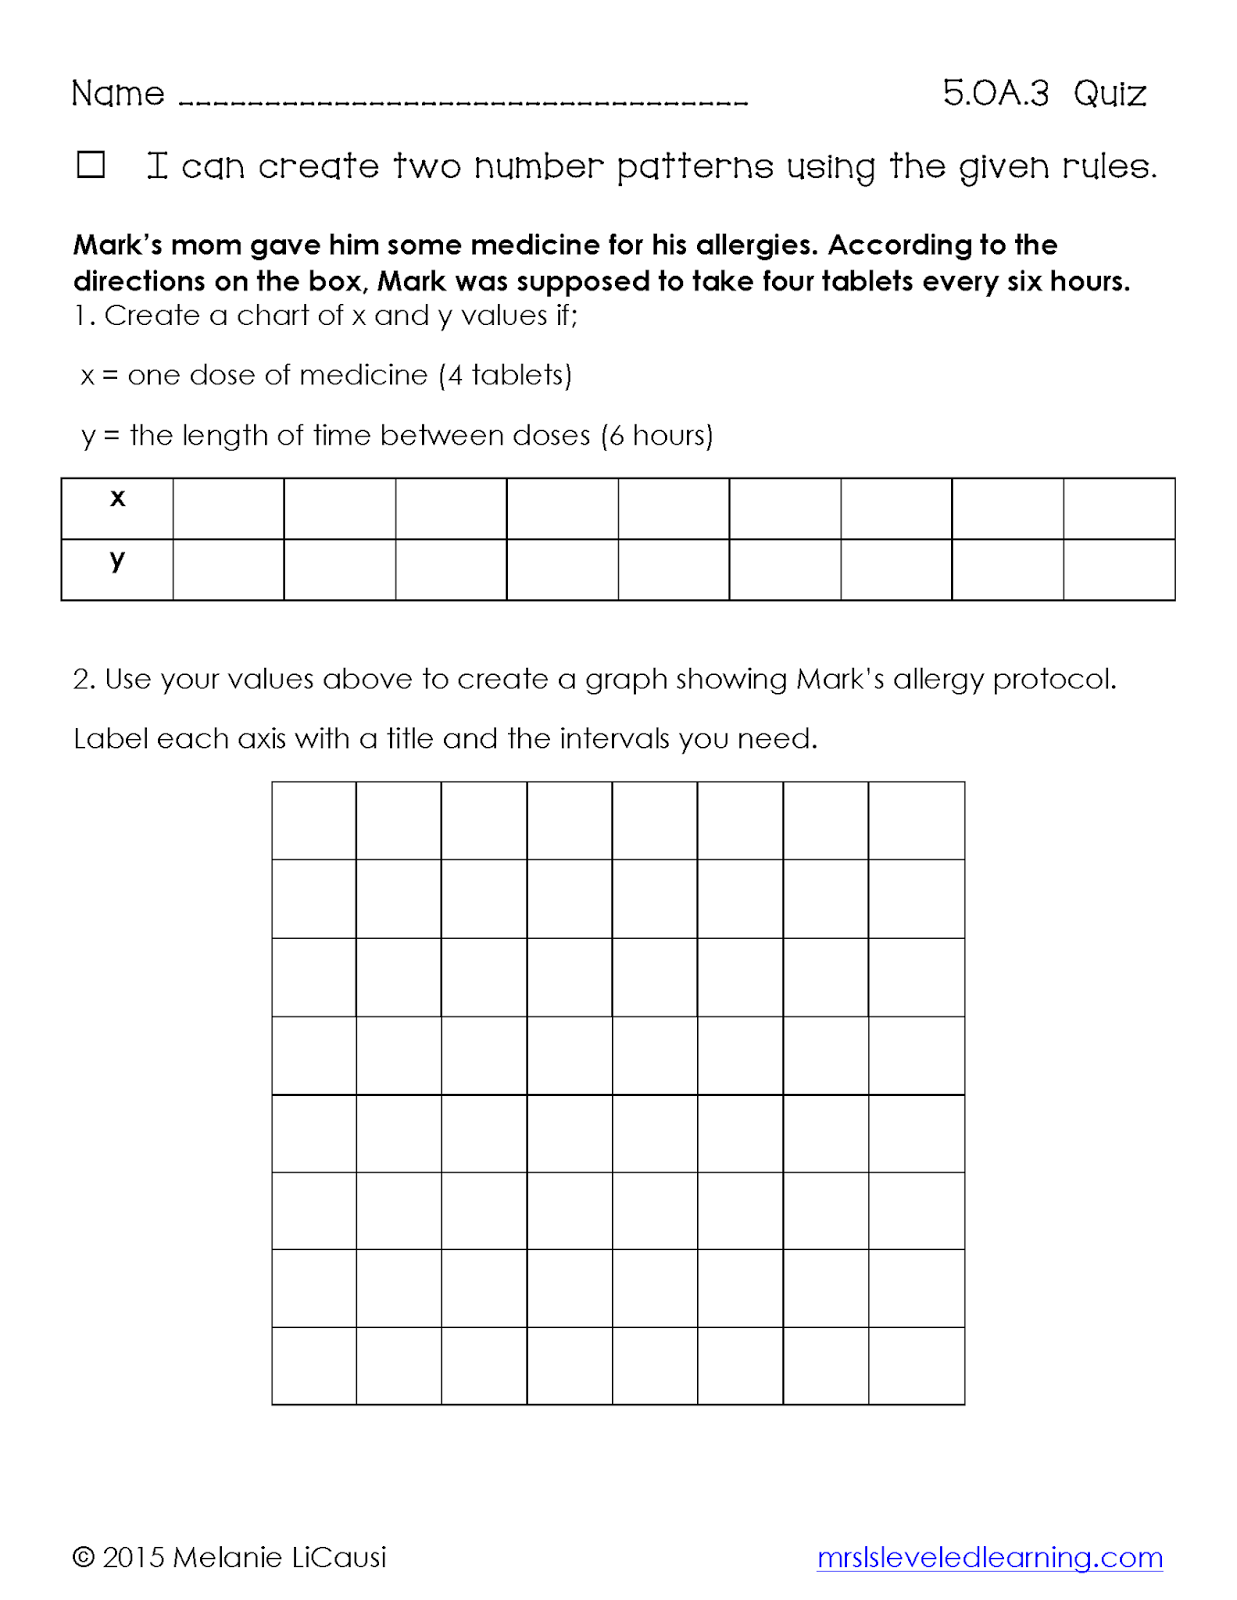 worksheet Common Core Fractions Worksheets mrs ls leveled learning 5th grade common core math quizzes for free